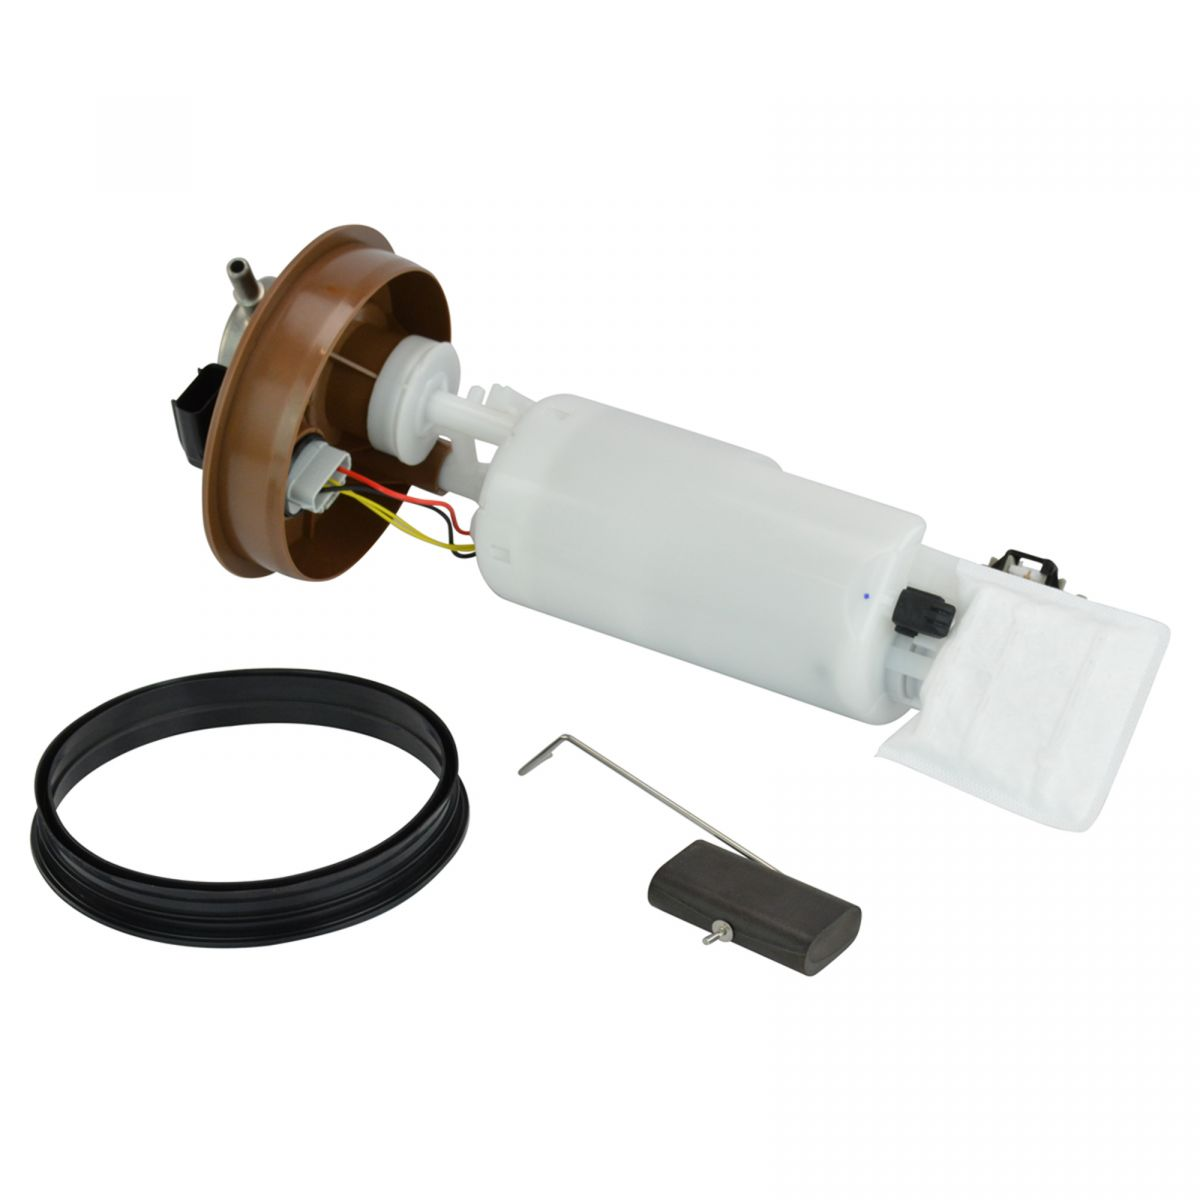 Plastic Fuel Pump New Electric Gas Vw With Sending Unit Volkswagen Beetle Module For Plymouth Dodge Neon 1200x1200